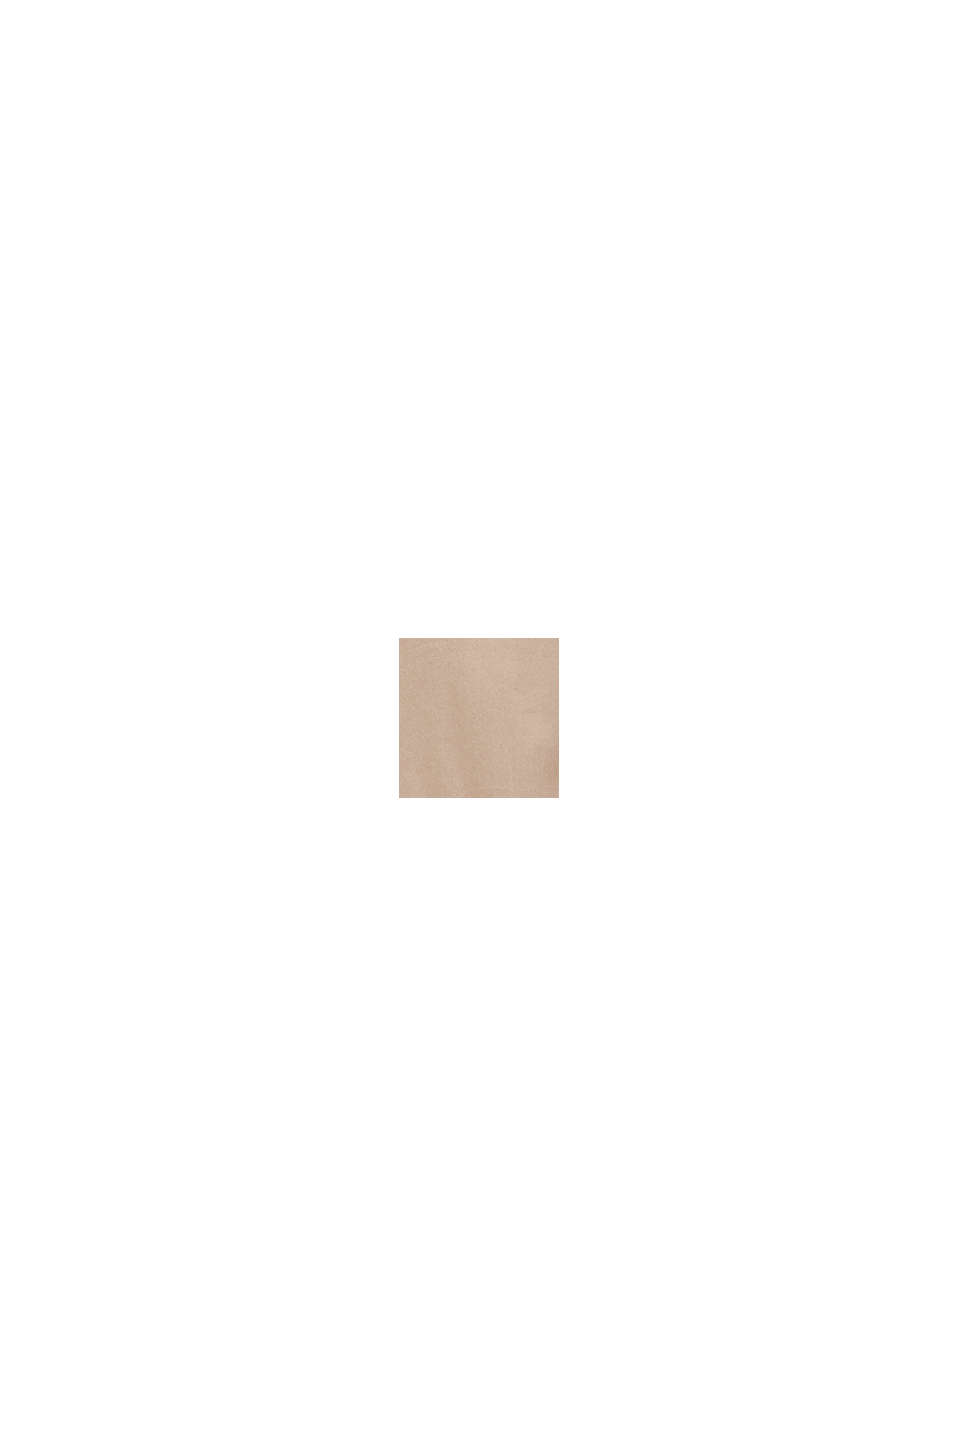 Stretch shorts with an over-bump waistband, BEIGE, swatch